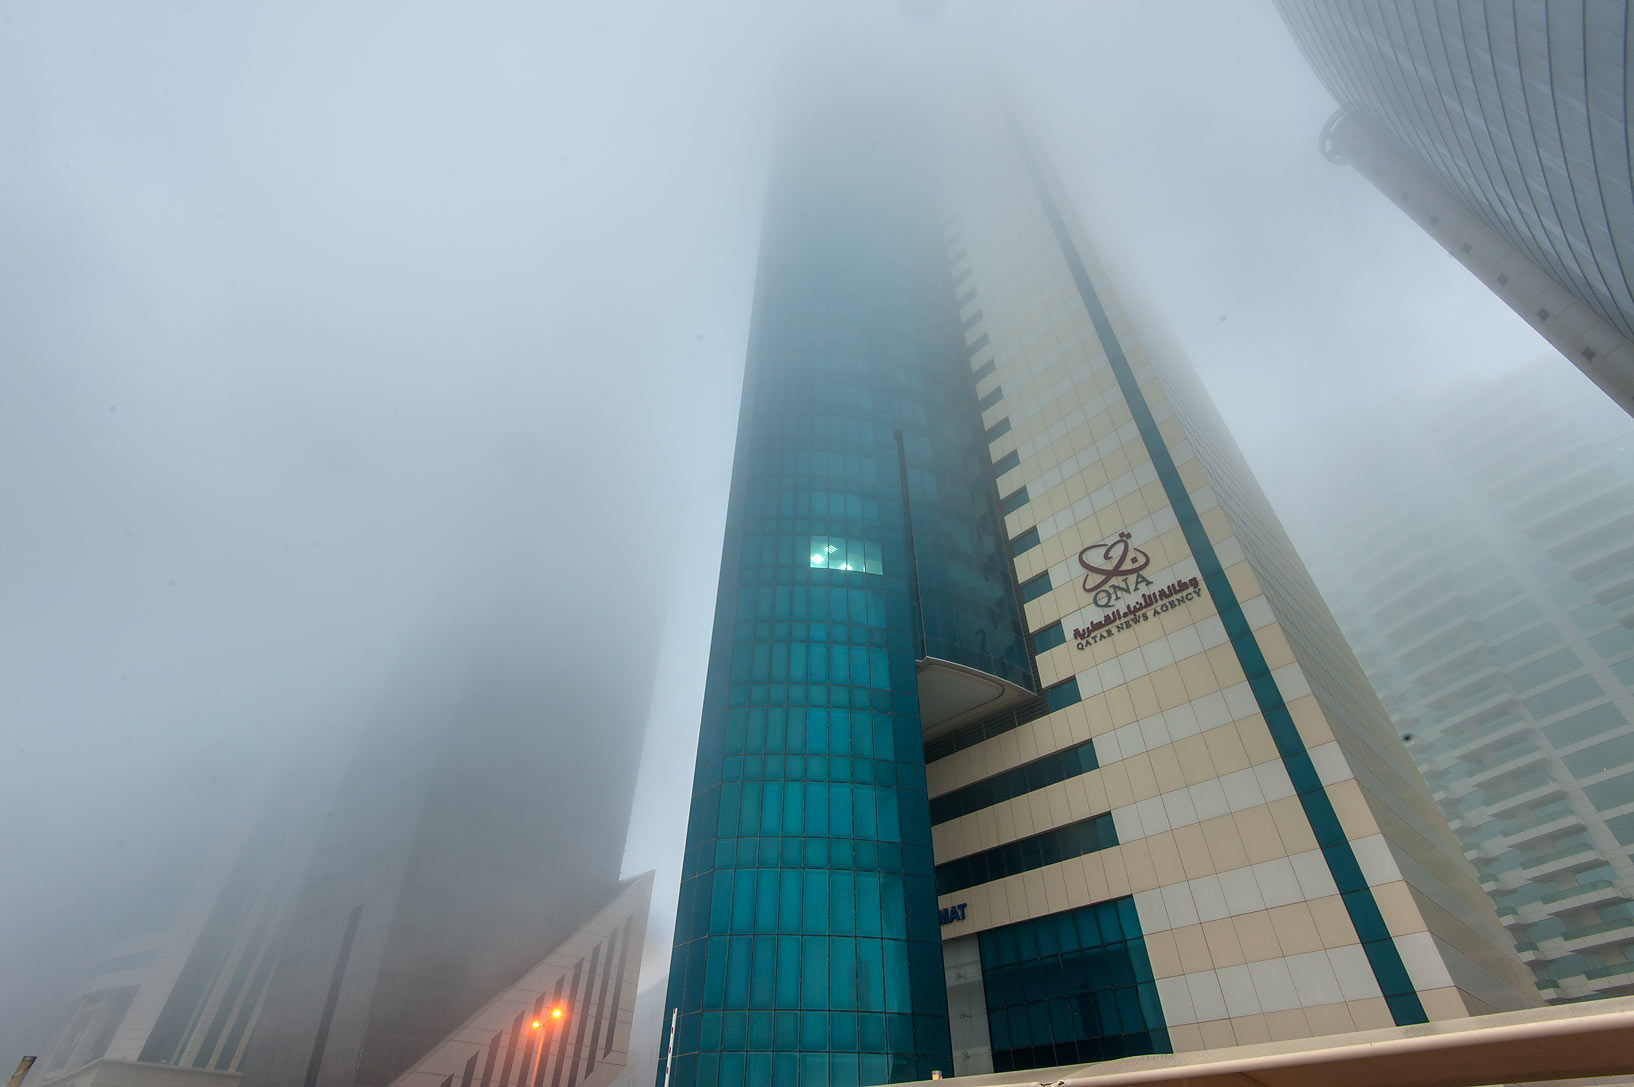 Qatar News Agency Tower (QNA) in West Bay in fog. Doha, Qatar